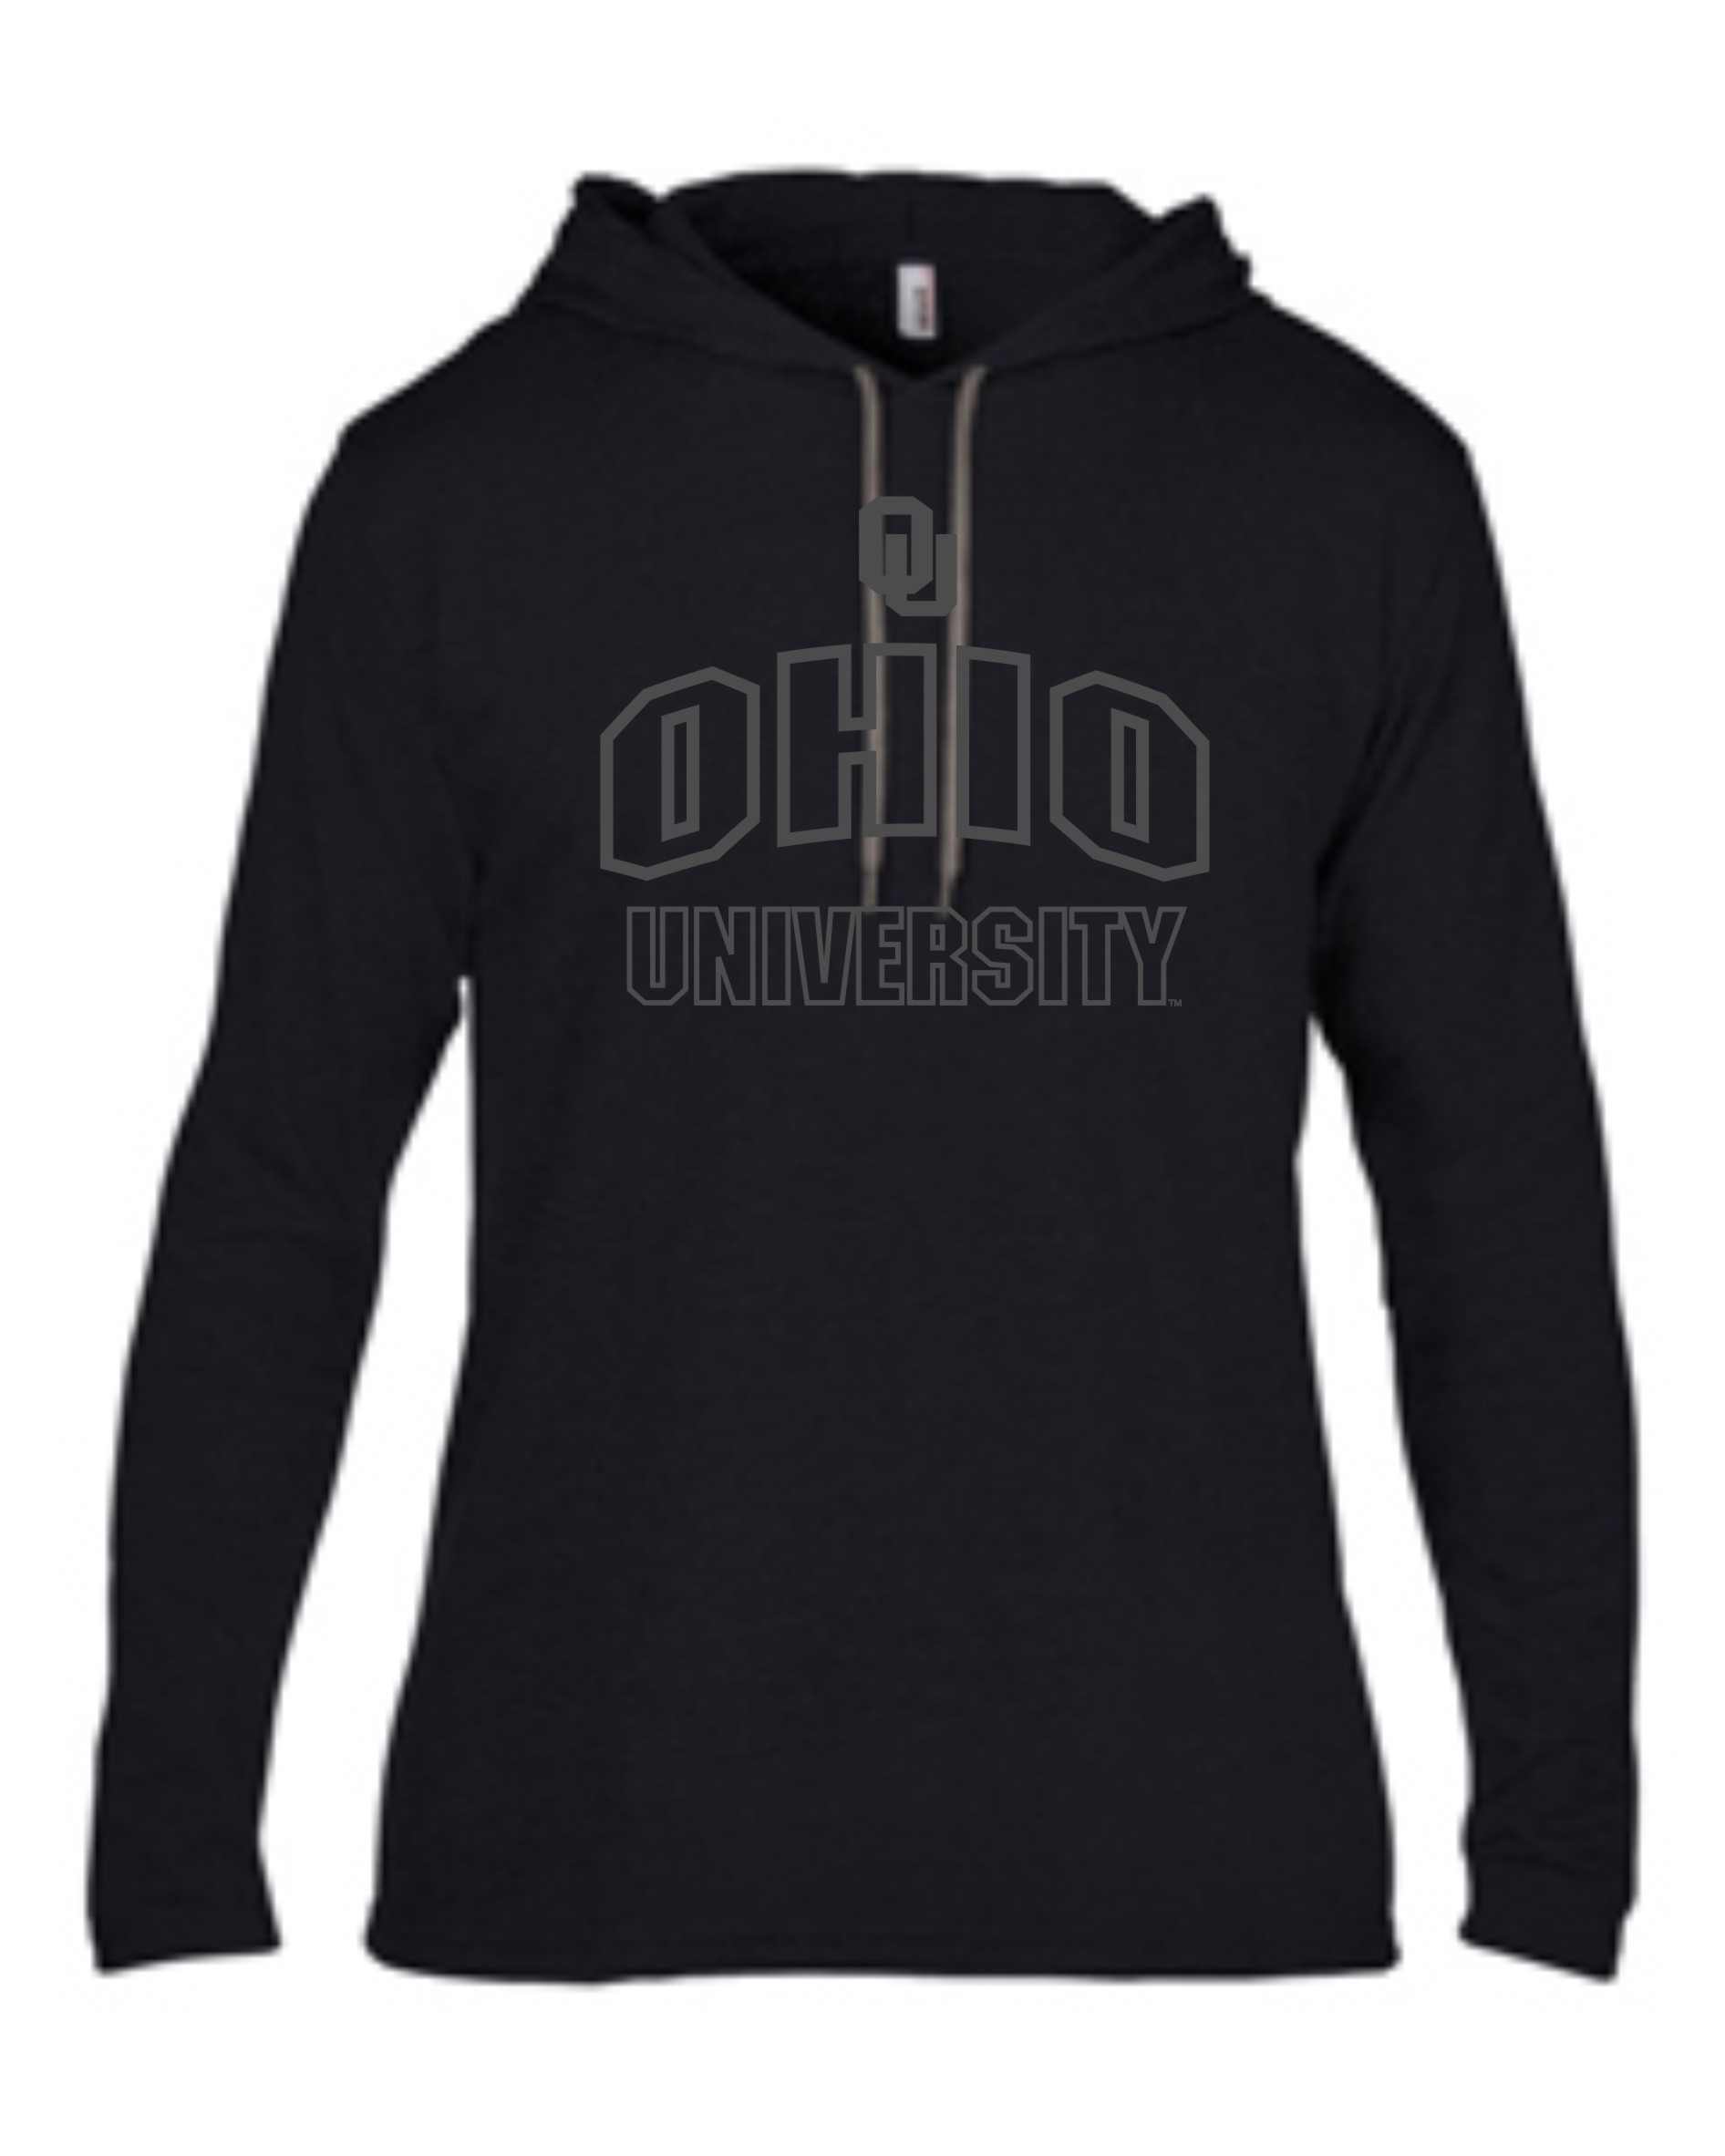 OU Shadow - Black hooded longsleeve